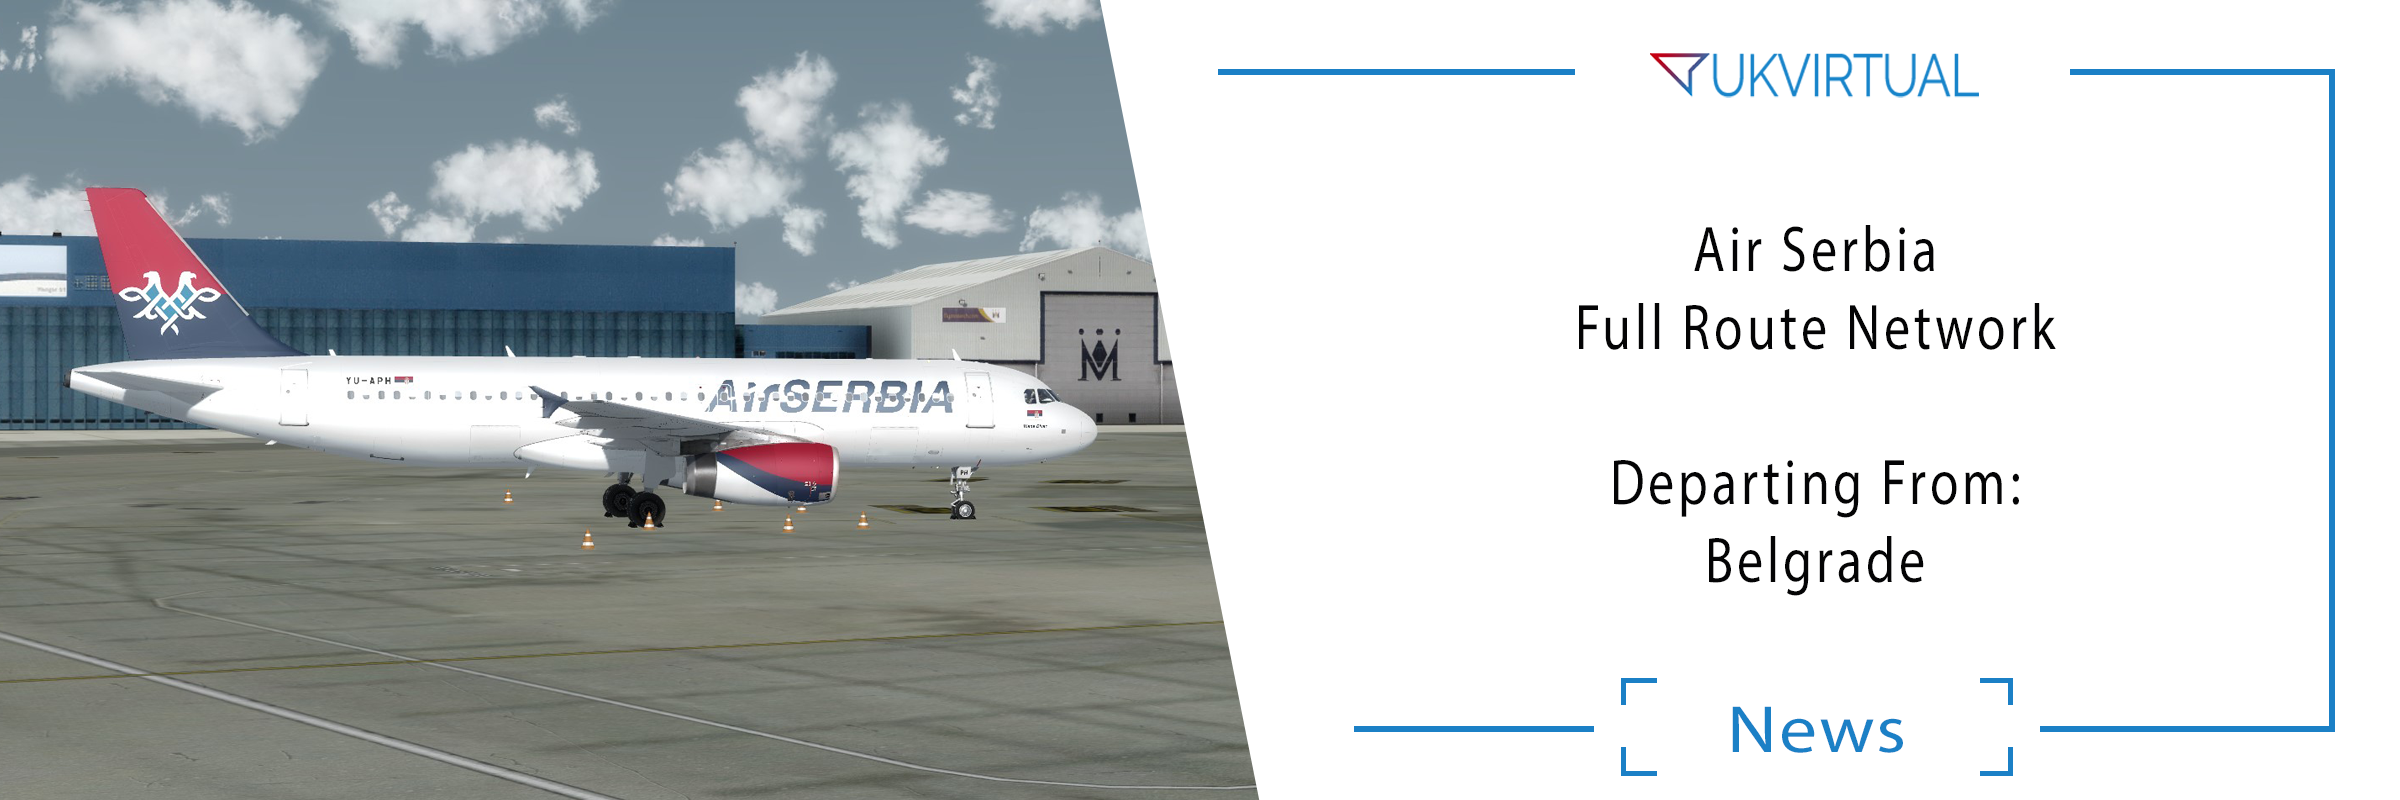 Air Serbia – Full Route Network